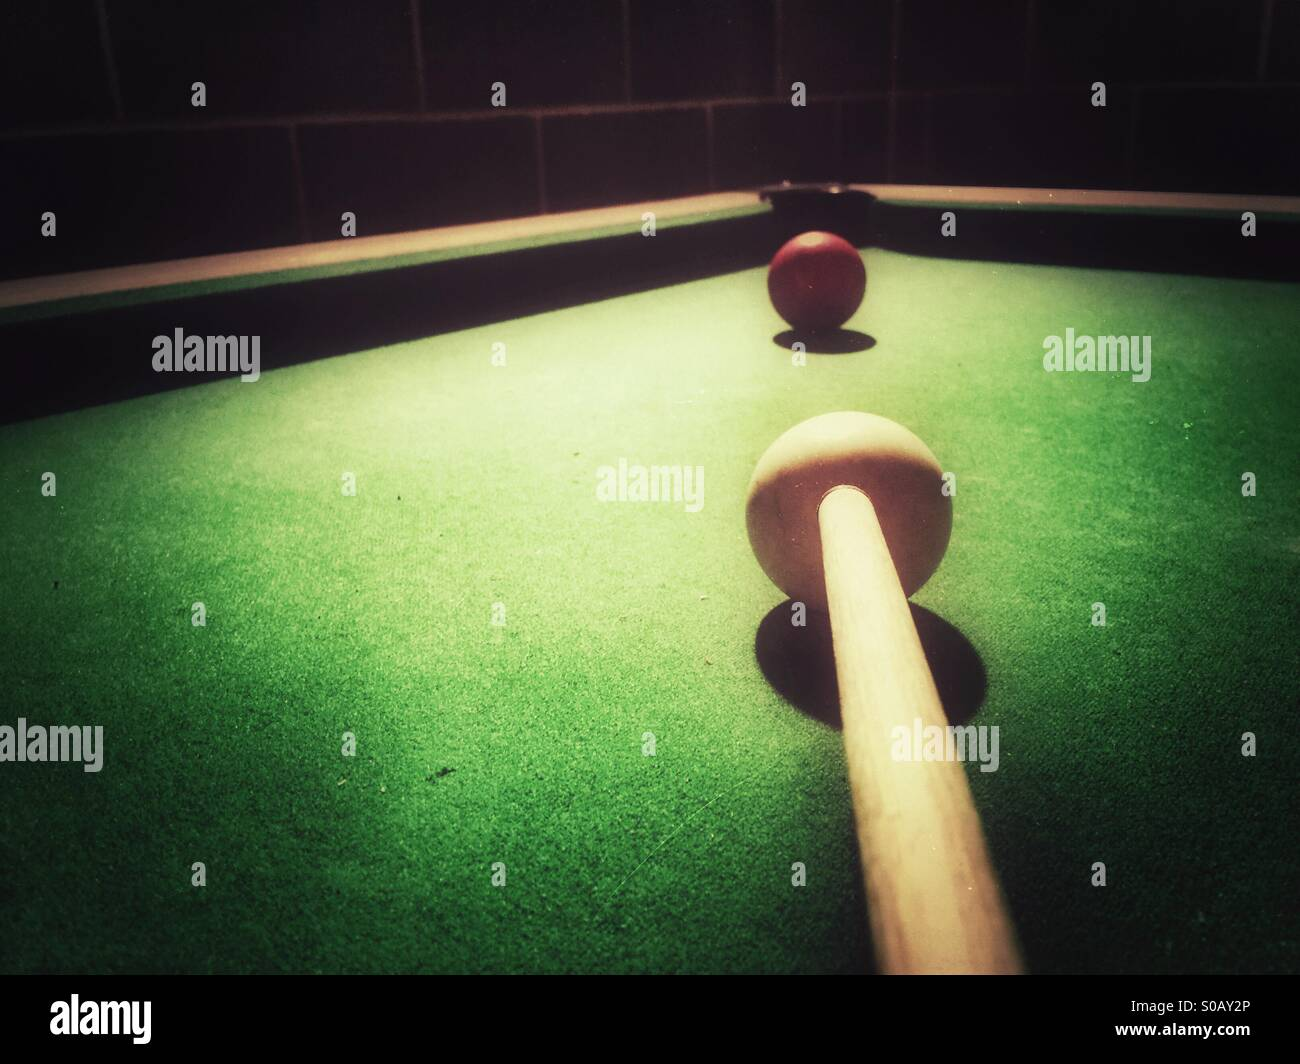 Jeu de billard Photo Stock